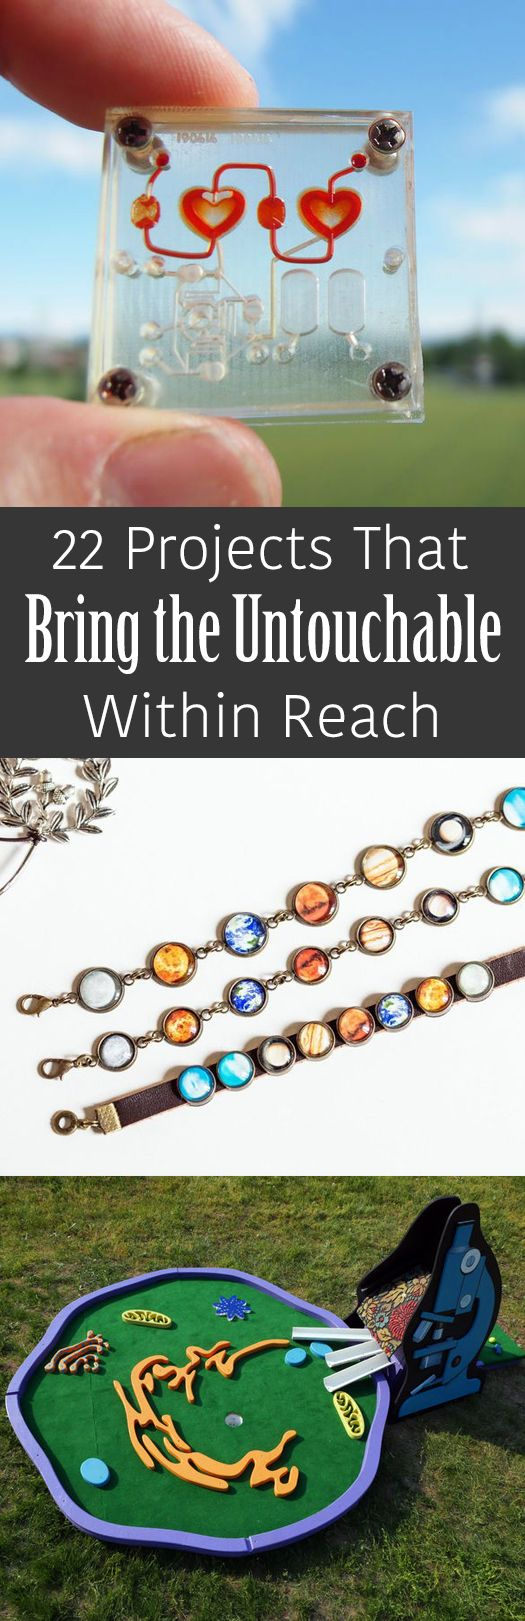 There are so many things beyond our grasp, but these 22 projects bring the untouchable to the touchable!